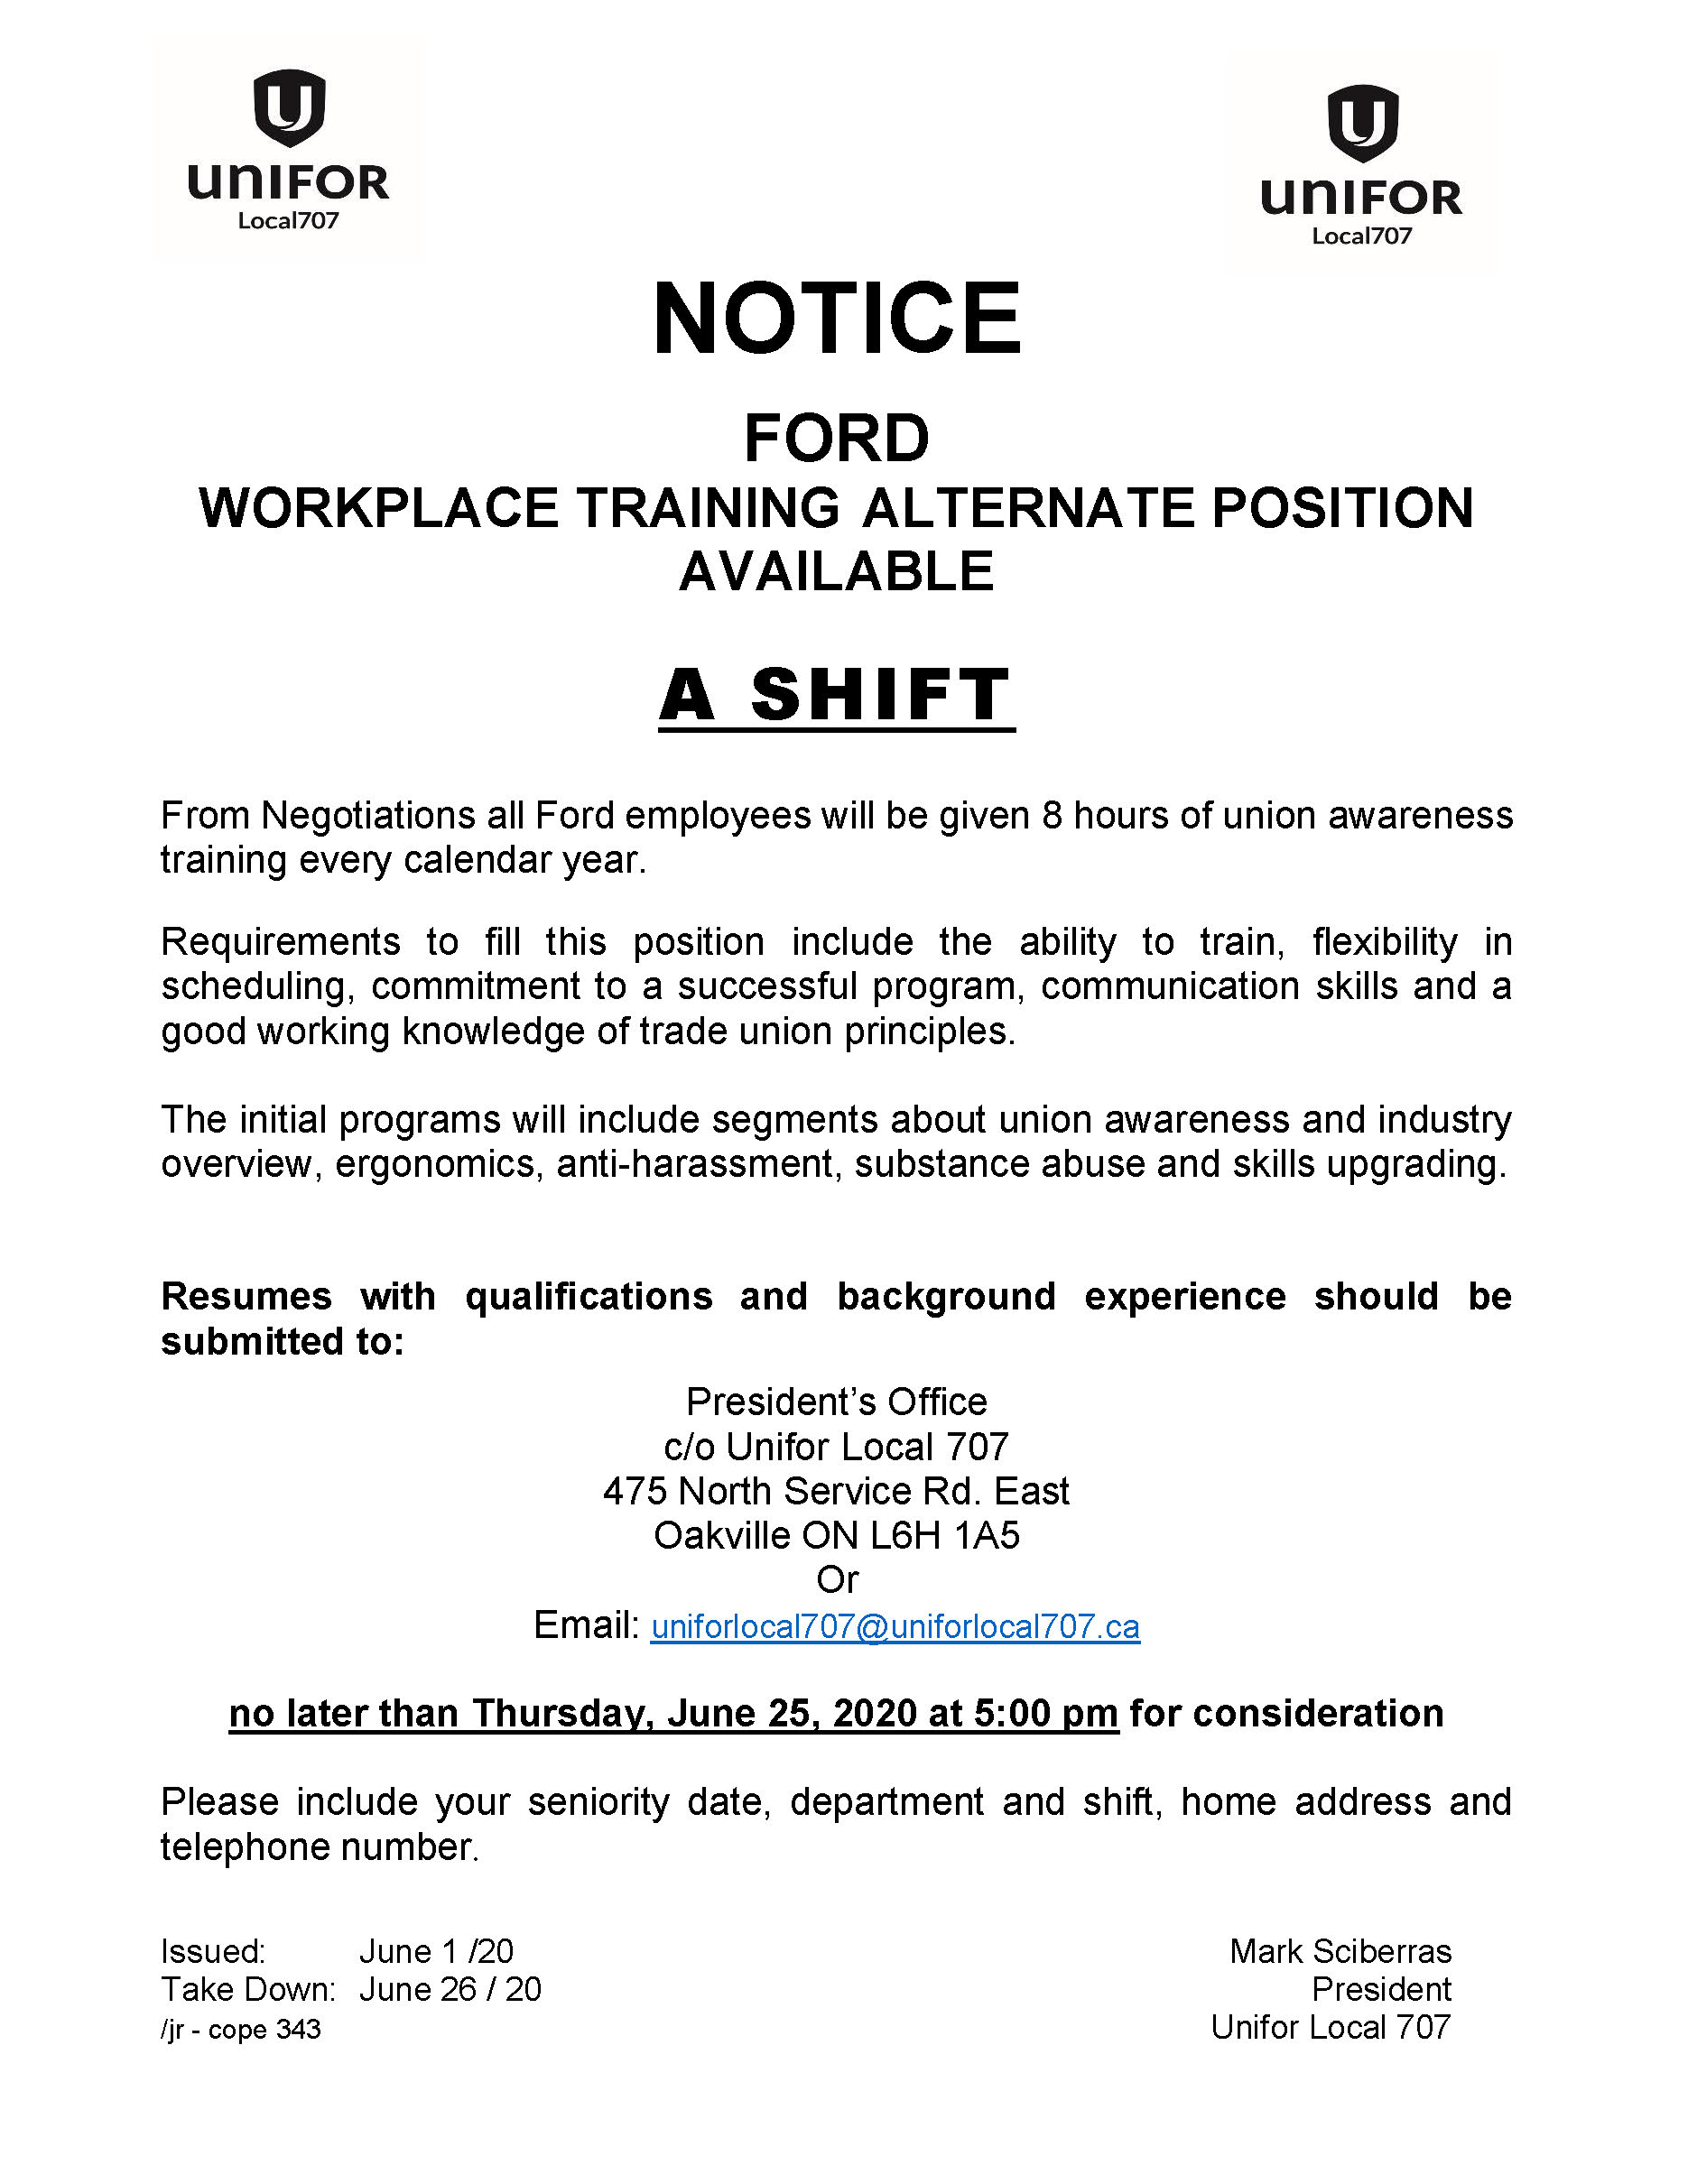 Ford Workplace Training Alternate Position A SHIFT resumes due 2020 JUNE 25